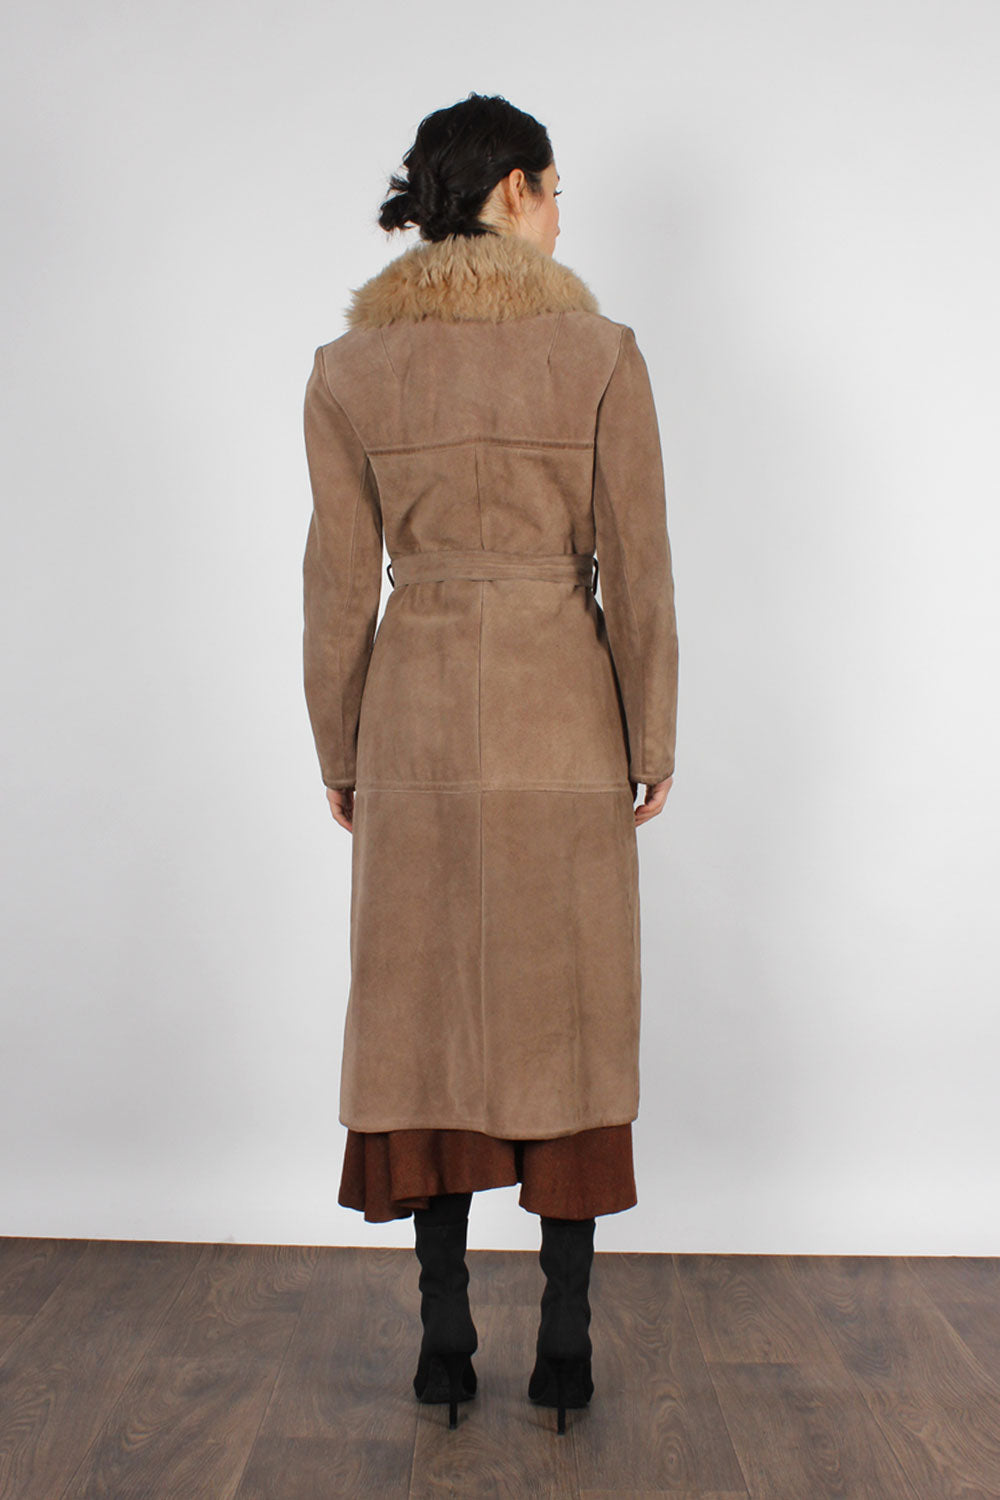 Abercrombie Shearling Suede Coat XS/S